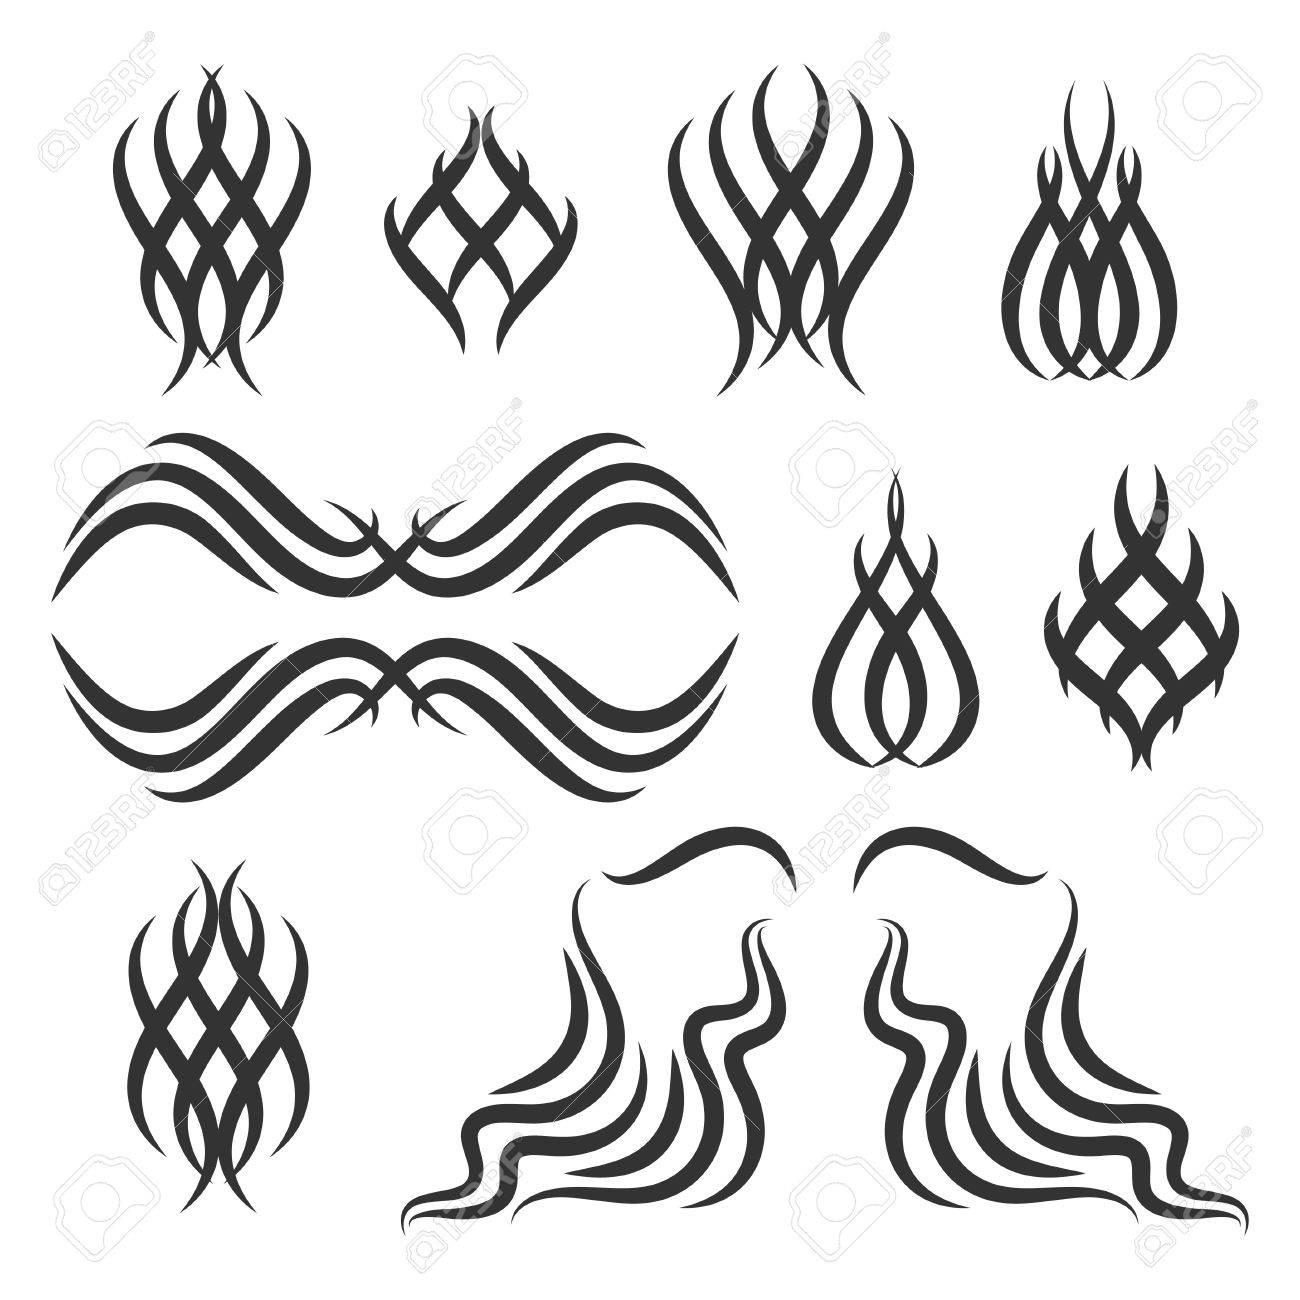 Simple tribal element set. Stock vector illustration of dingbat..